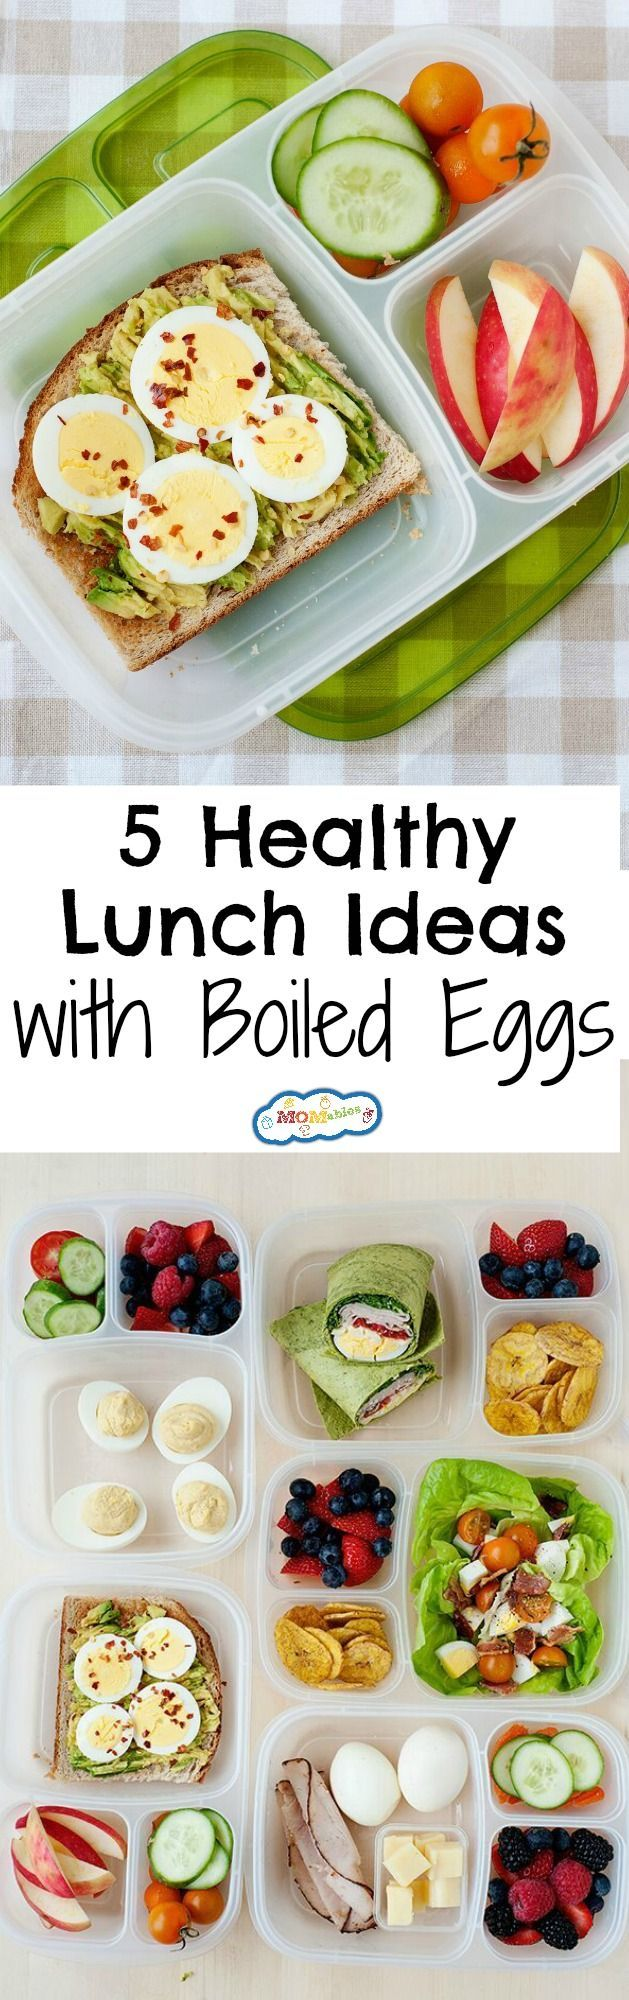 10964 best easy lunch box lunches images on pinterest for Lunch food ideas